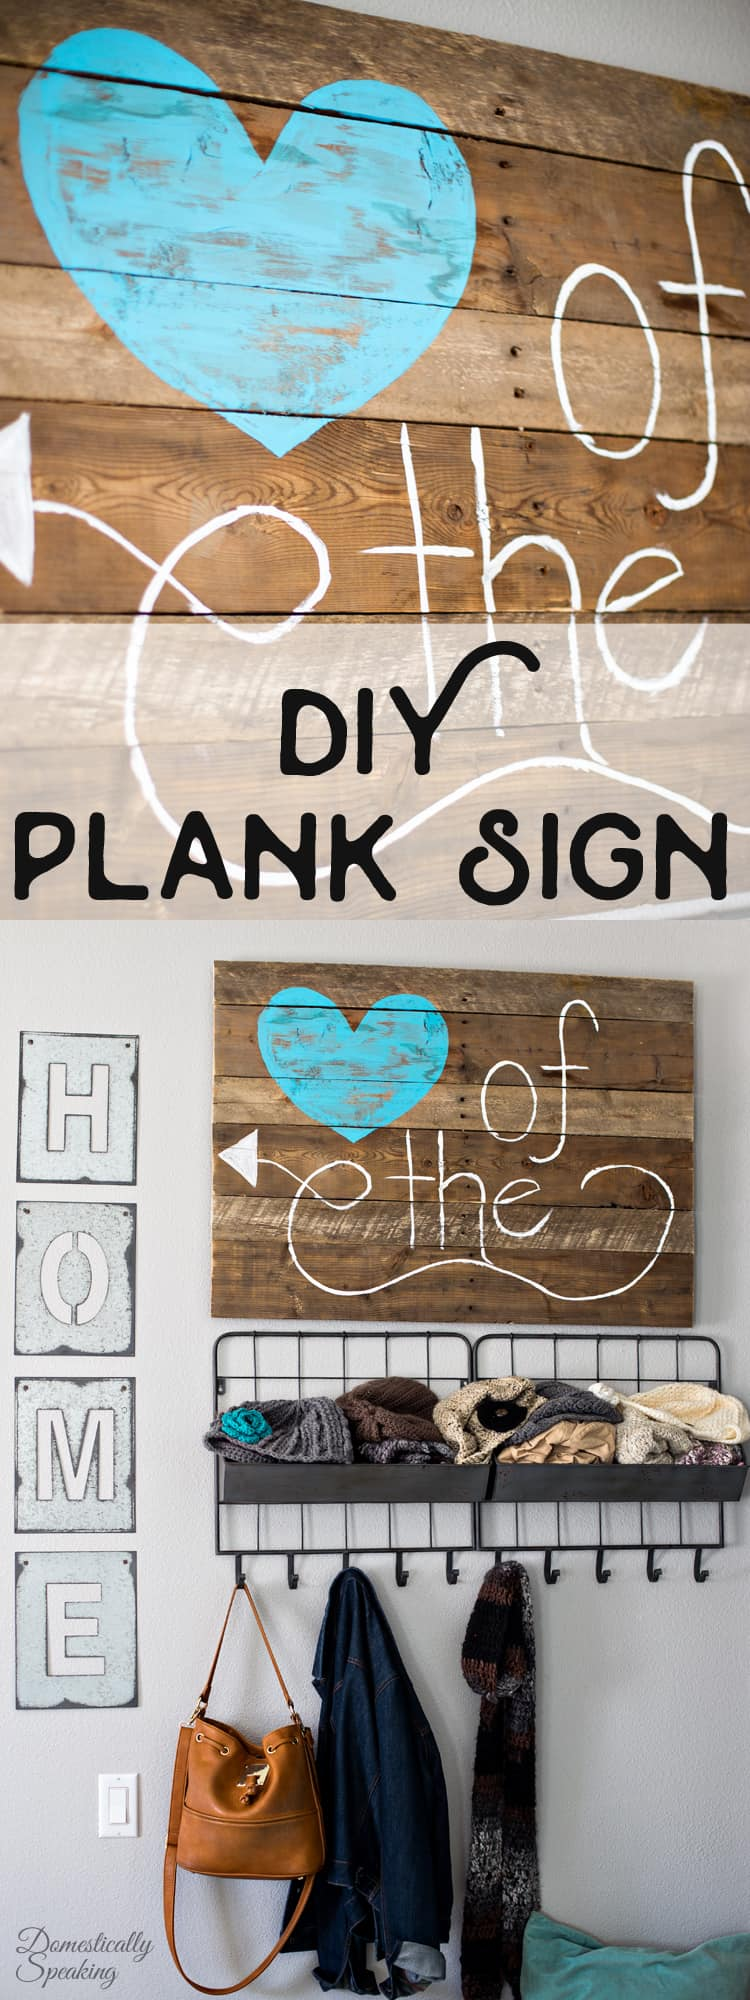 DIY Kitchen Pallet Sign with a Teal Blue Heart a Heart of the Home Sign